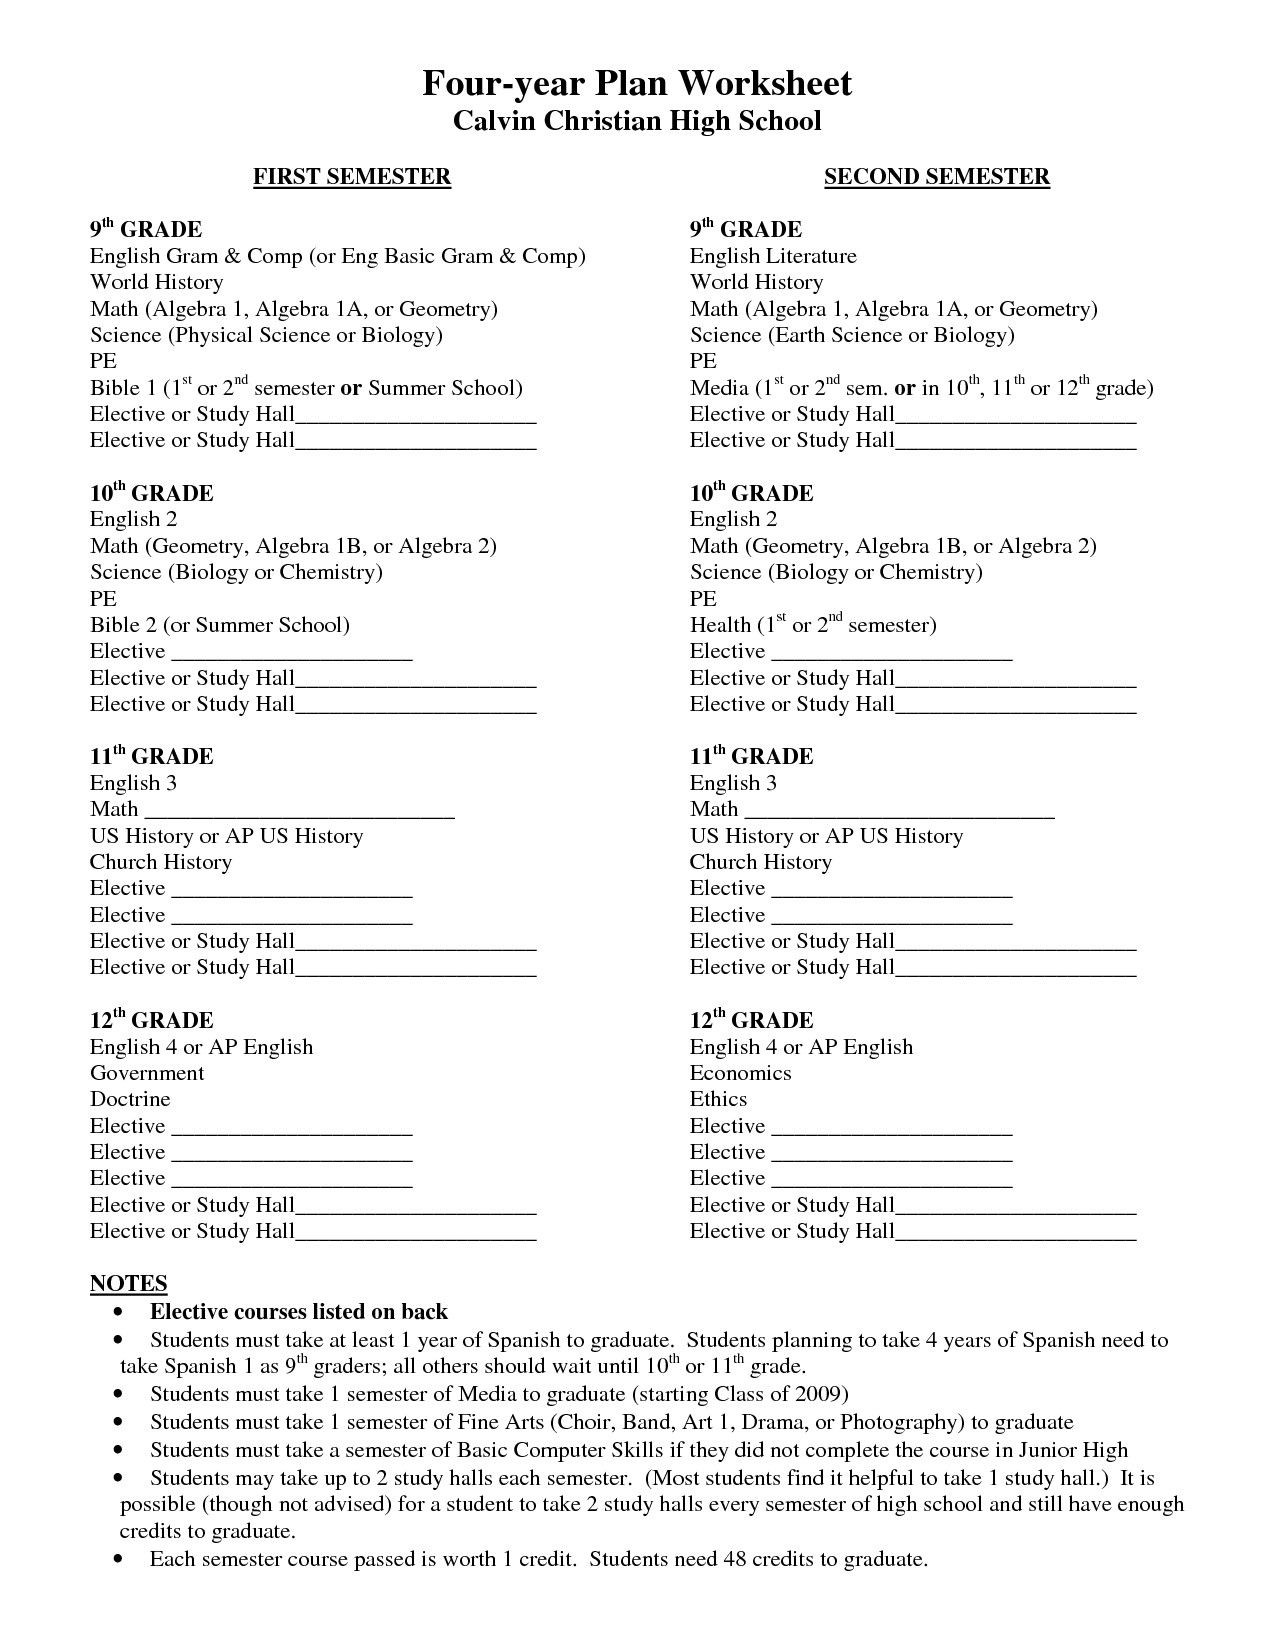 9th Grade Physical Science Worksheets 3 Free Math Worksheets Fourth Grade 4 Word Problems 4